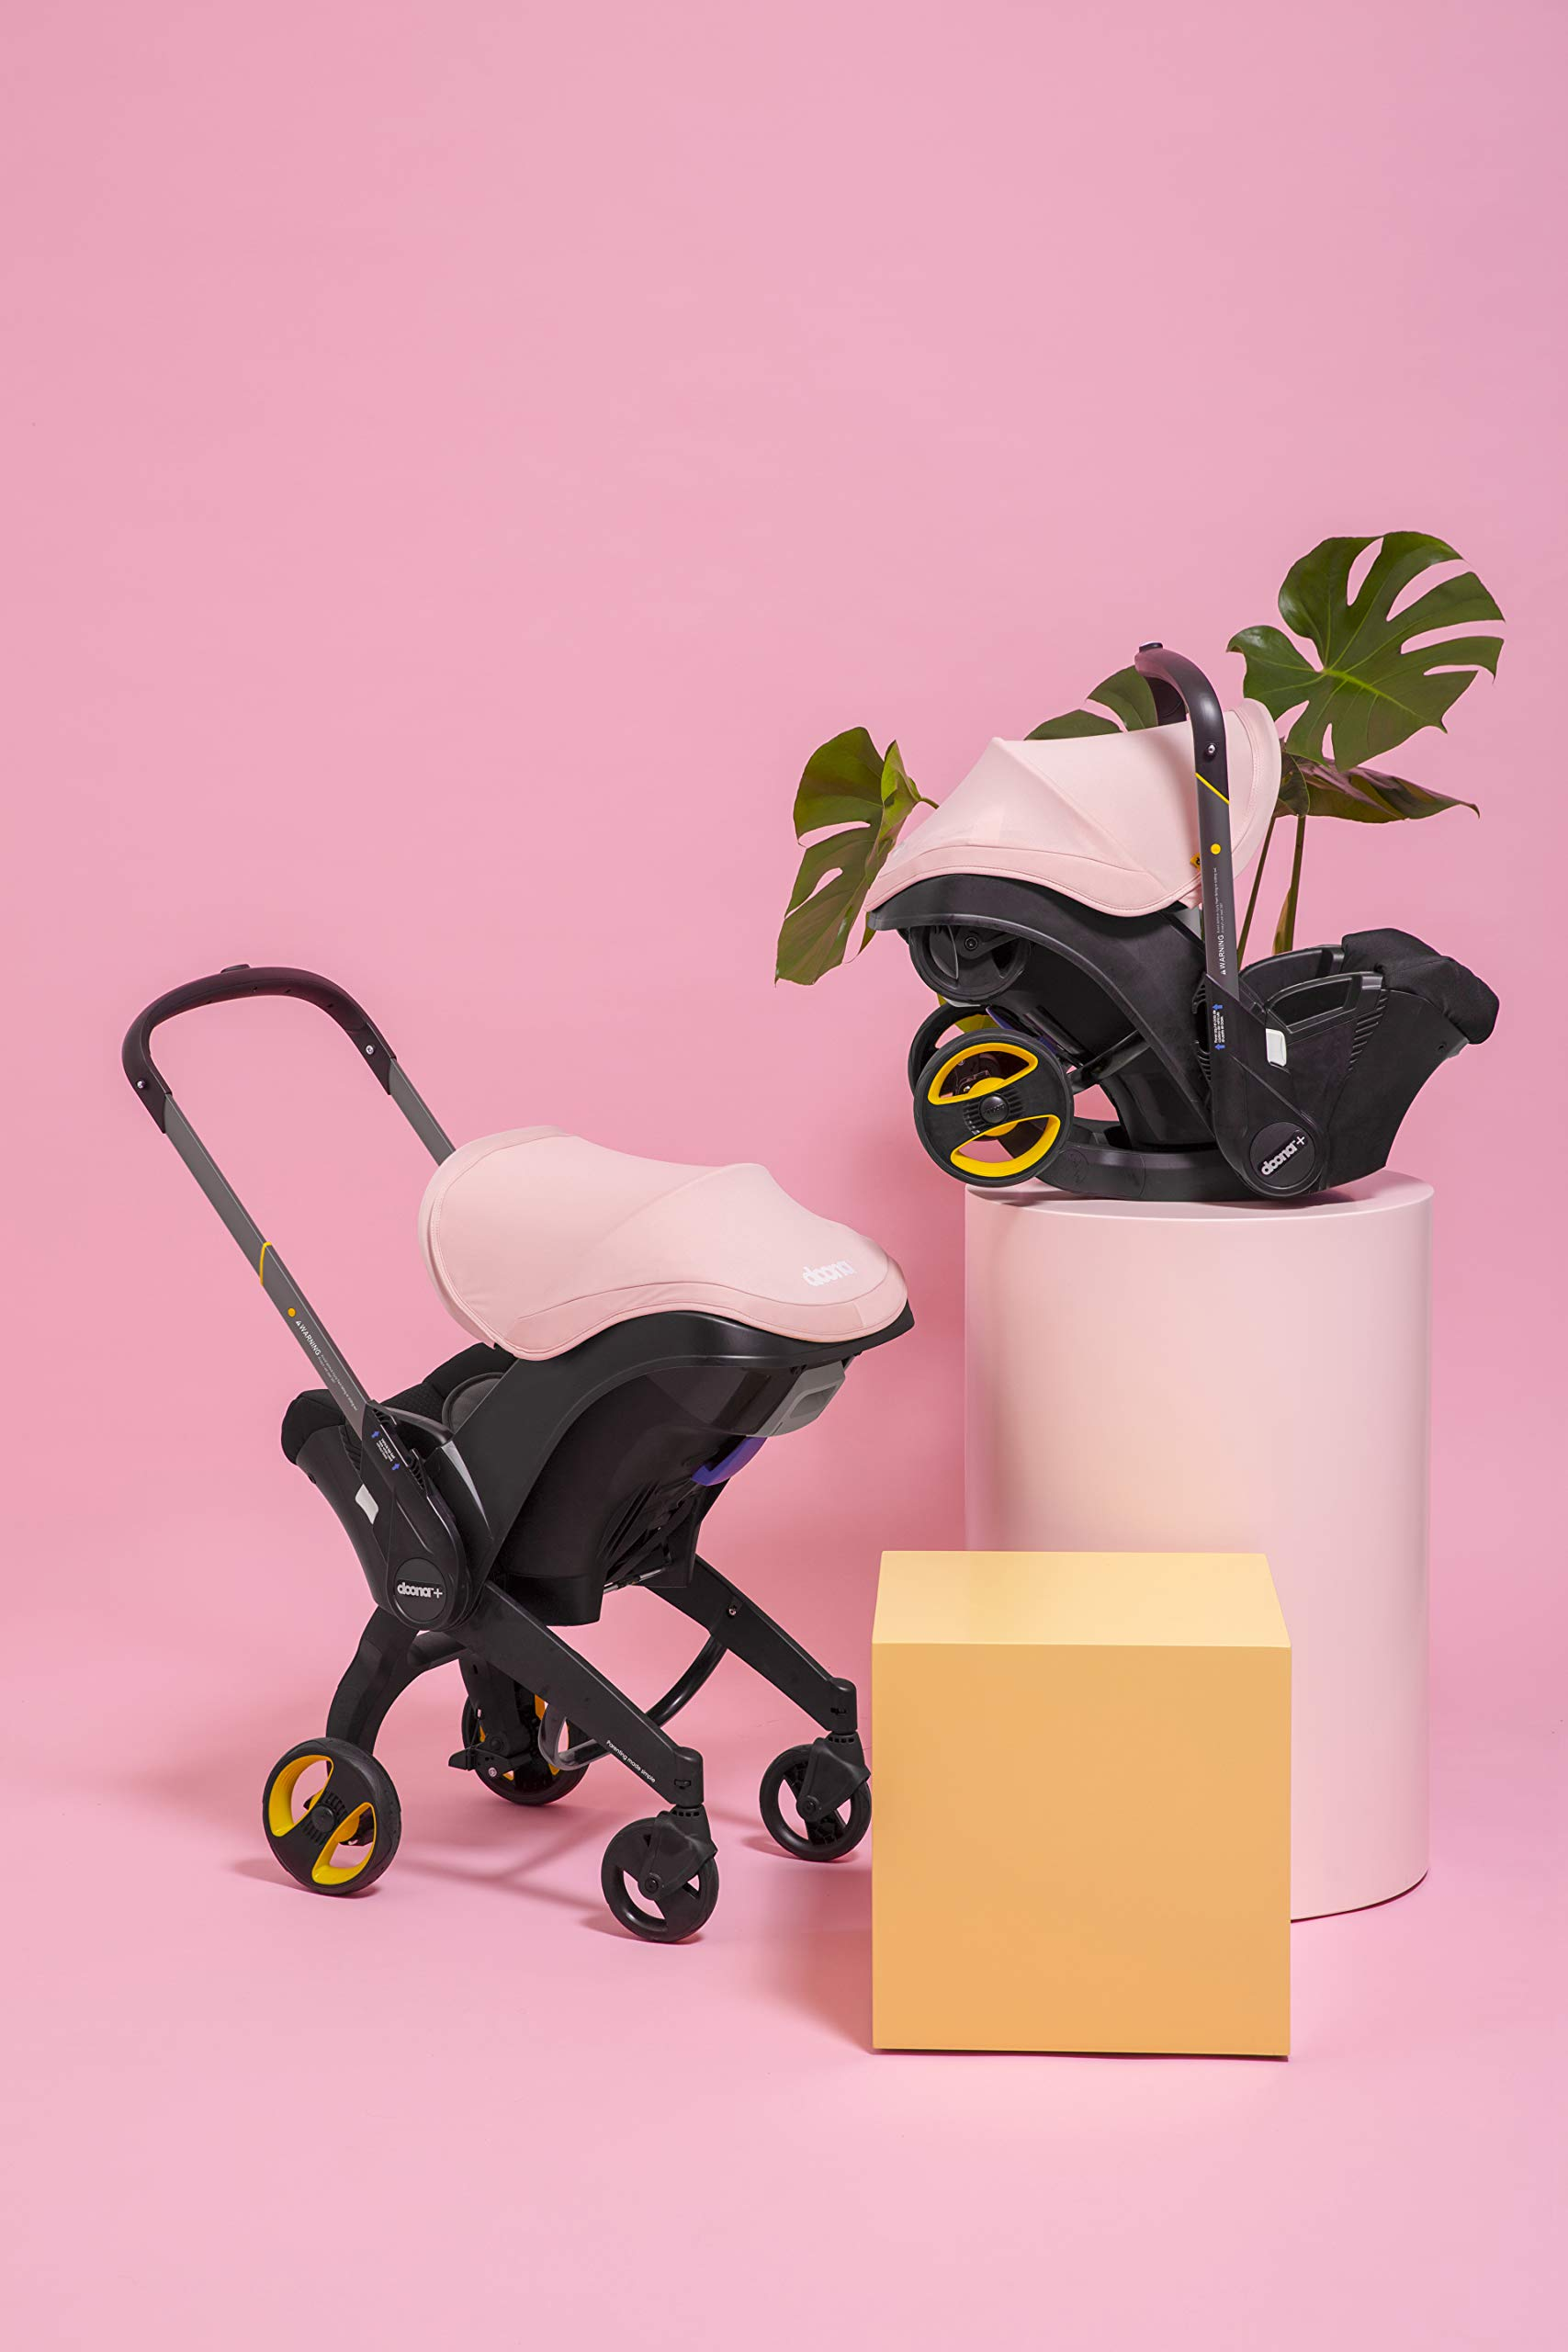 Doona Car Seat and Pram, Blush Pink, Revolutionary 0+ Car Seat that Folds Between Car Seat & Pram in Seconds, ISOFIX Base Available. Car Seat H60cm x W44cm, Pram H99cm x 82cm. Perfect for Travelling Doona  6